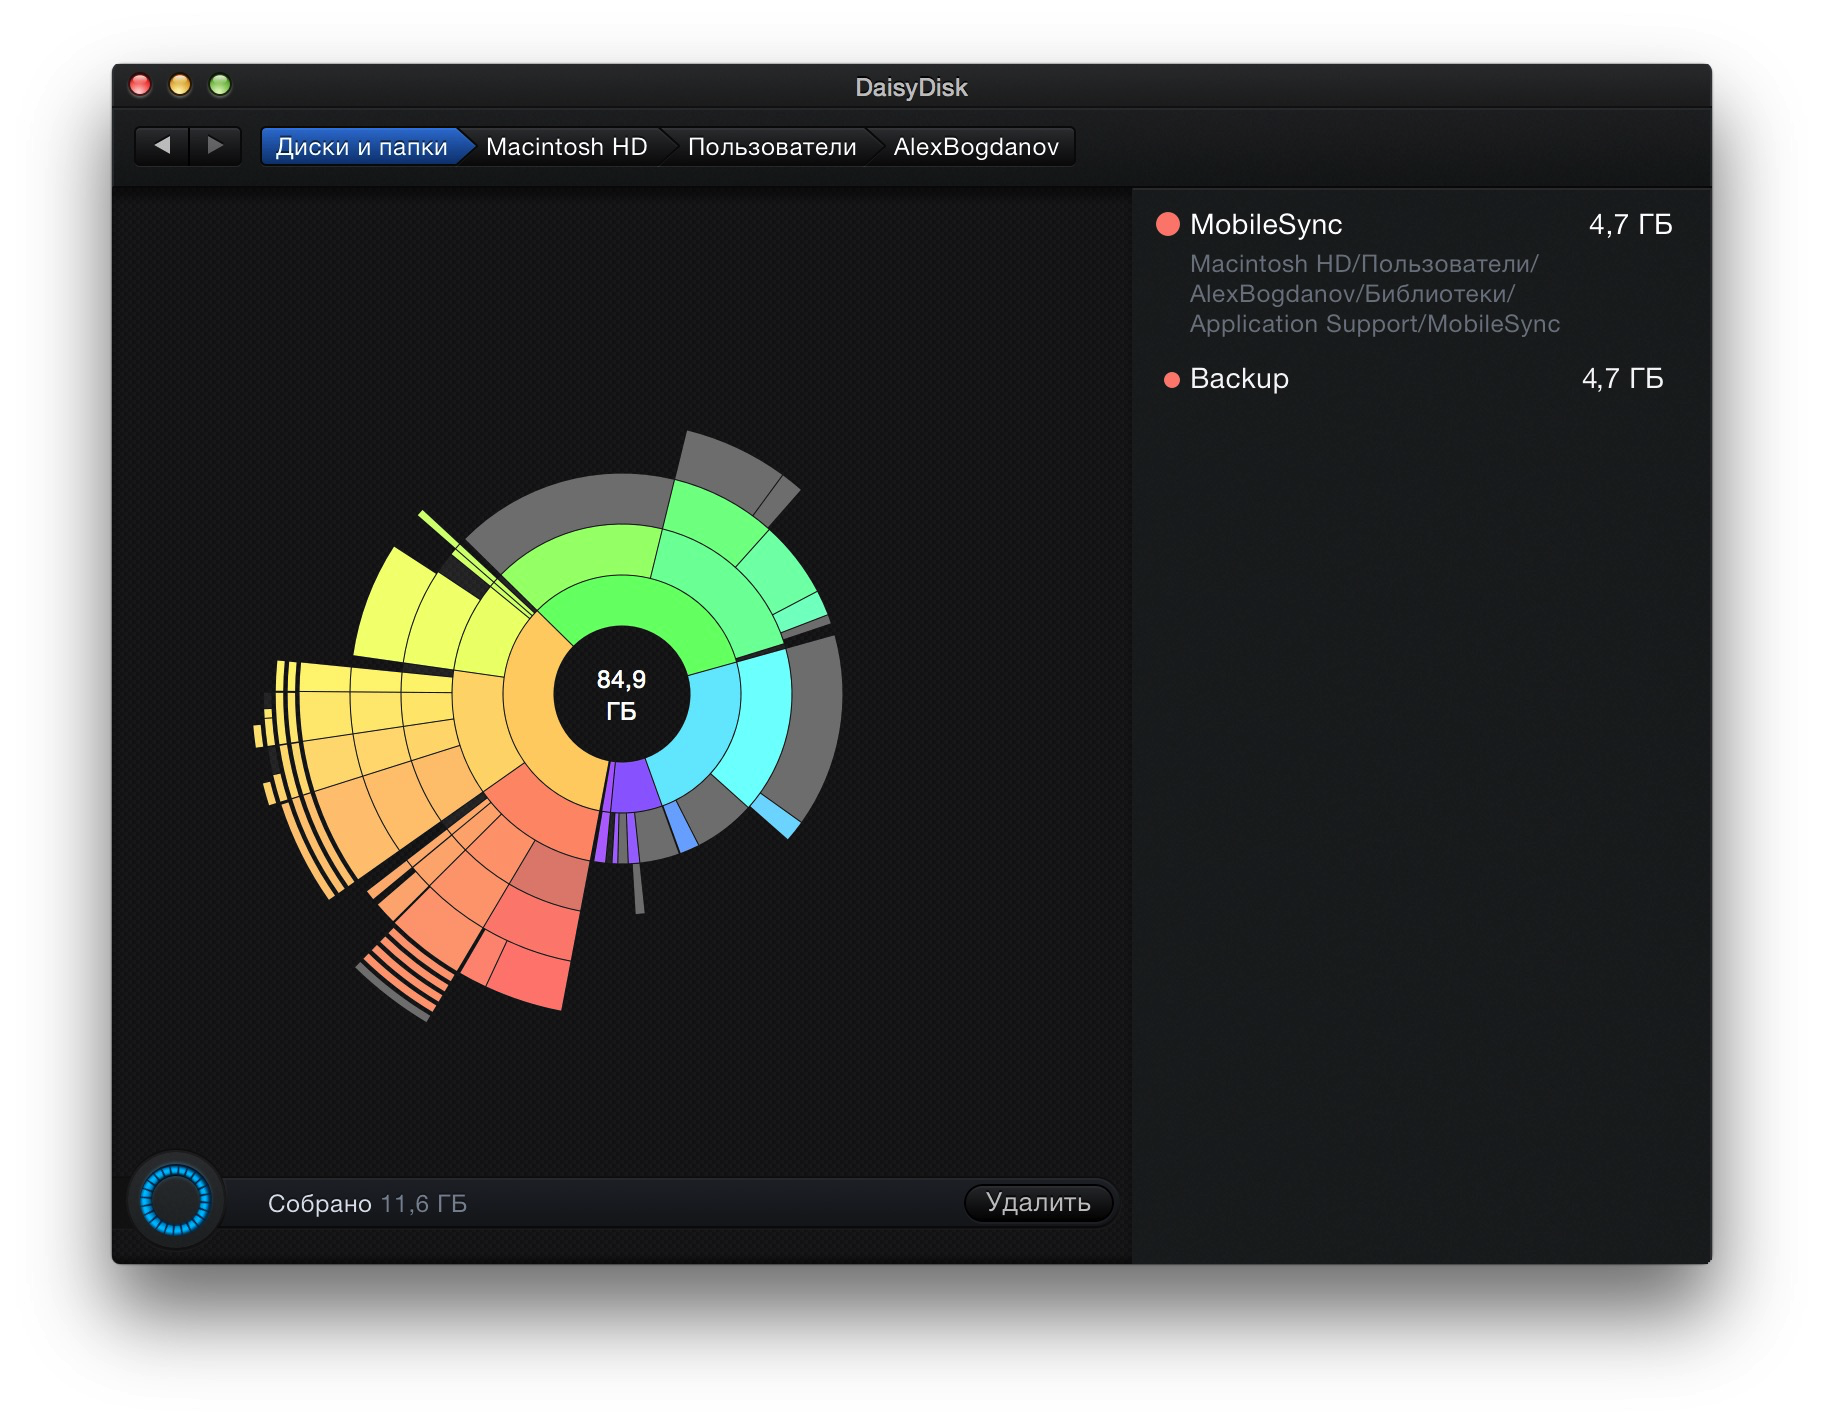 DaisyDisk — for those who keep your Mac clean